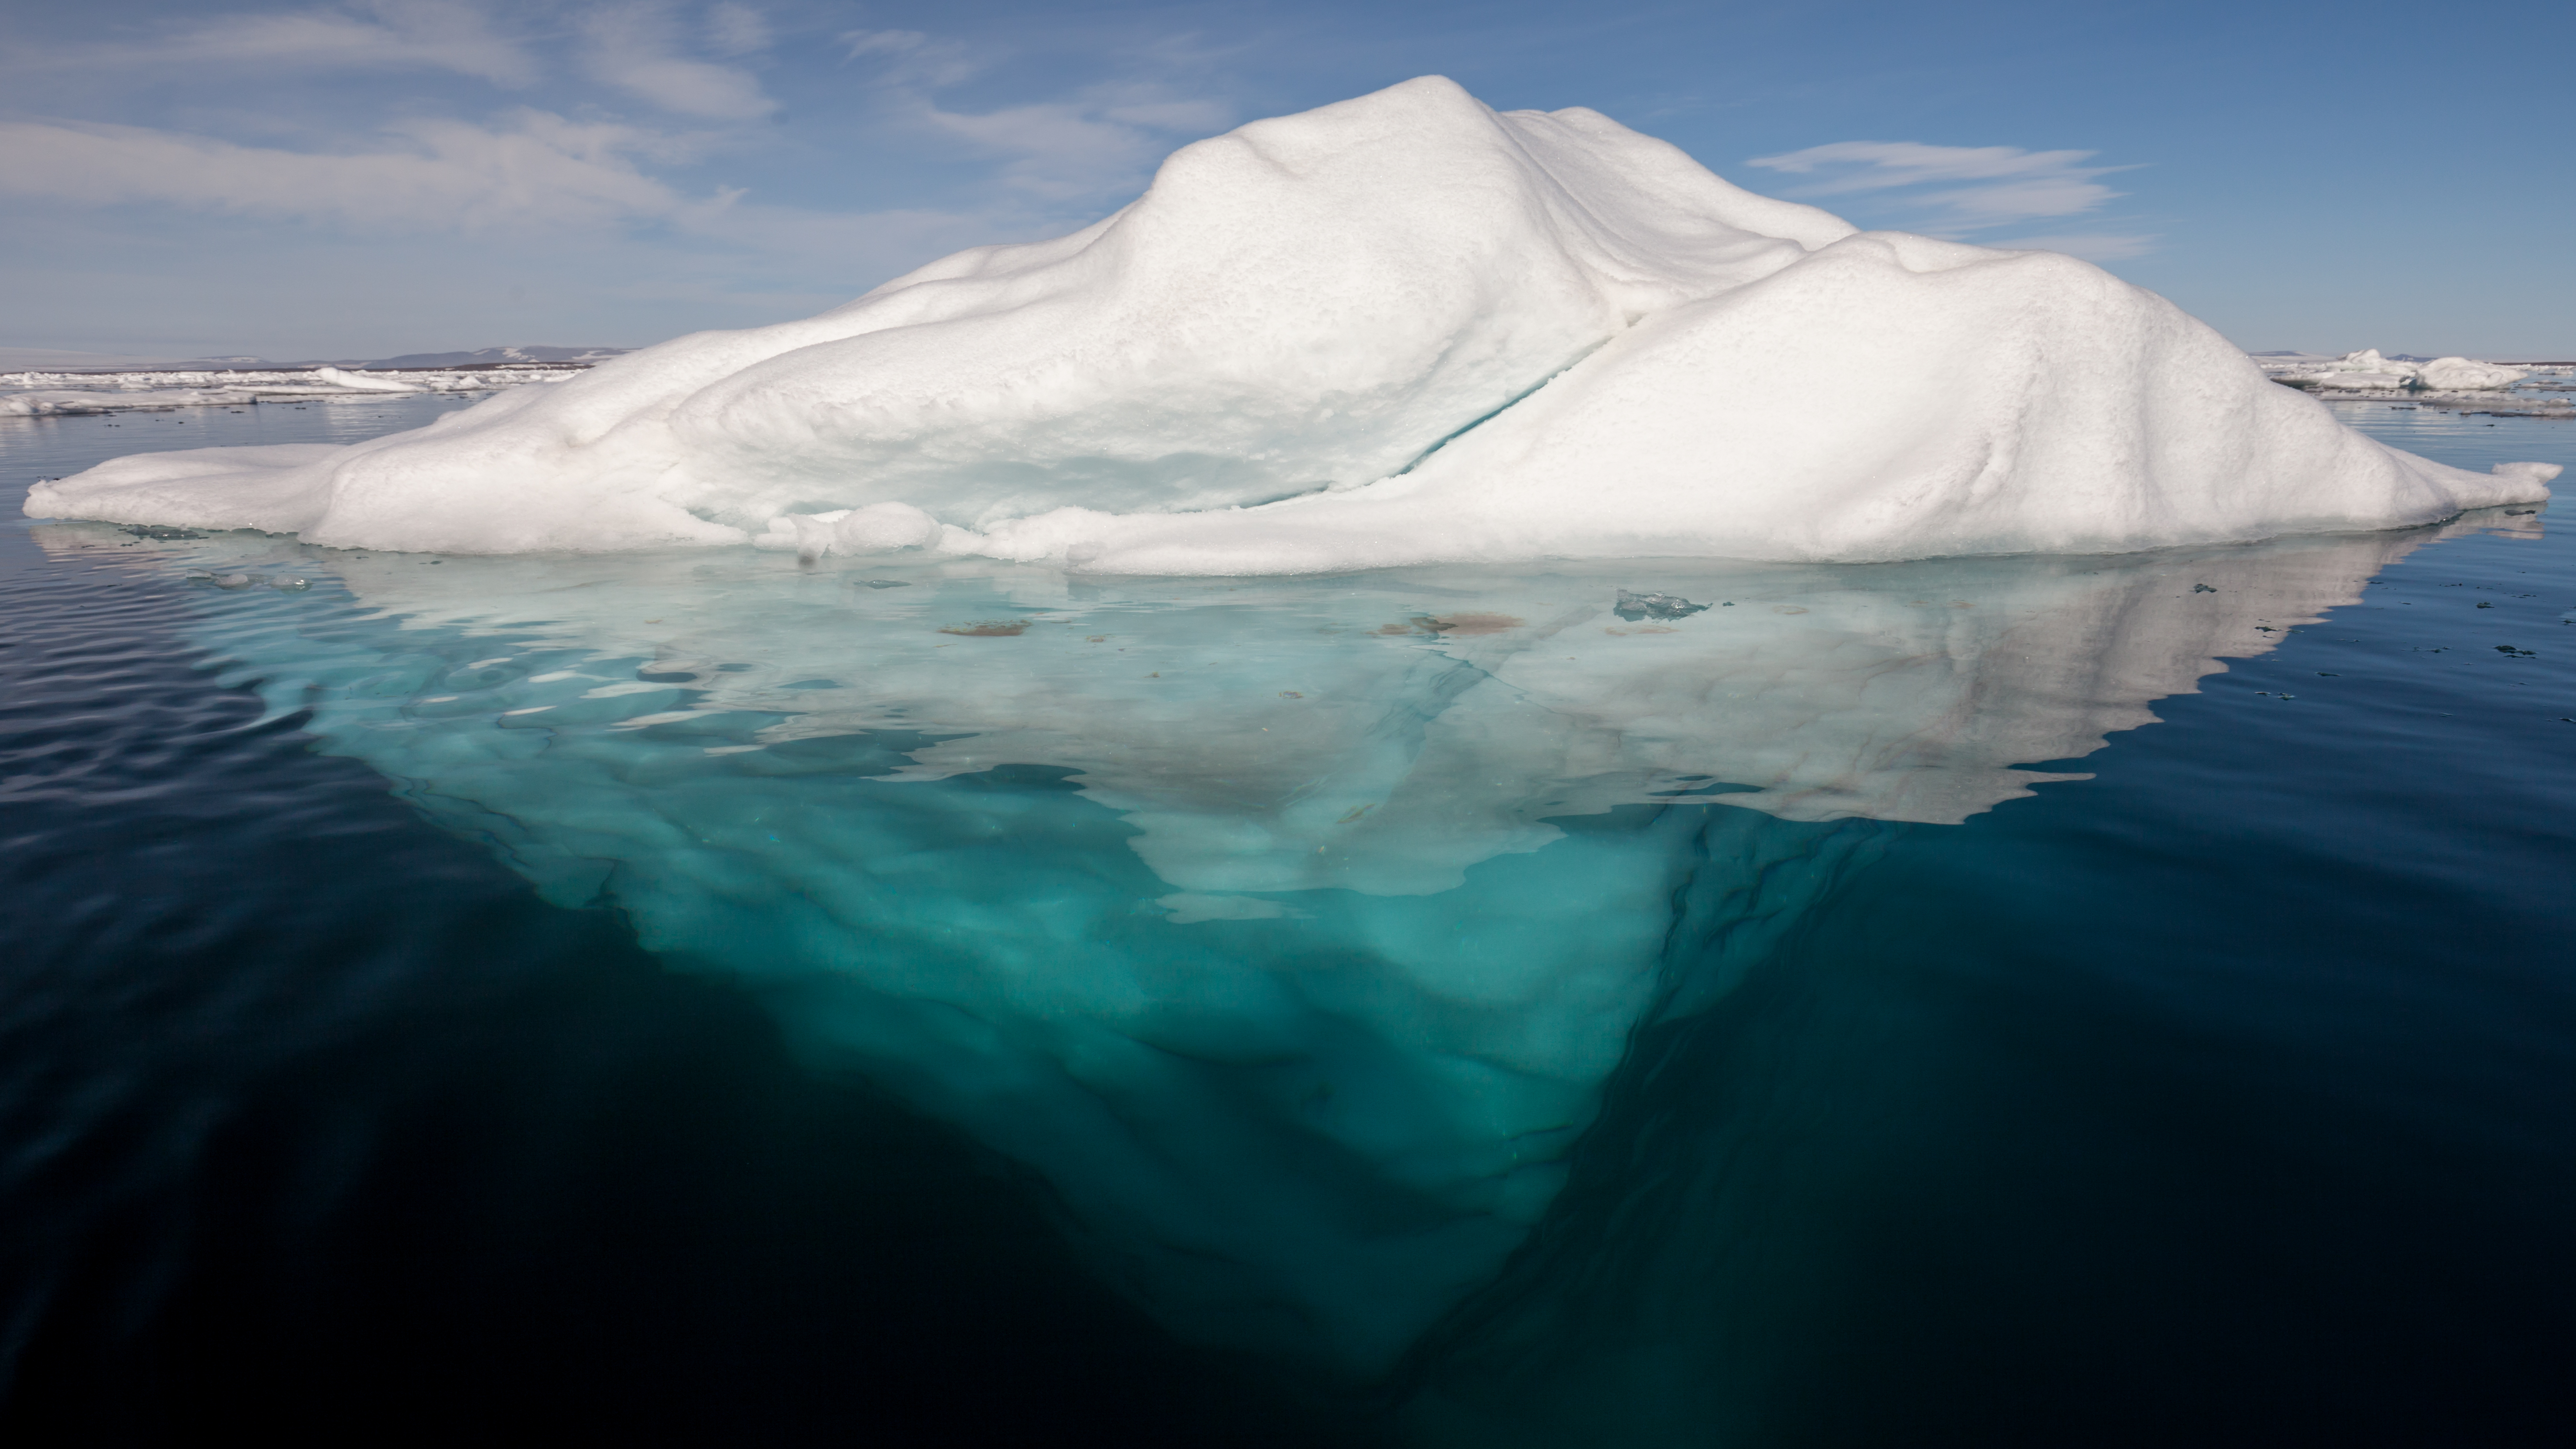 Iceberg in the Arctic, AWeith/Wikimedia Commons/CC BY-SA 4.0